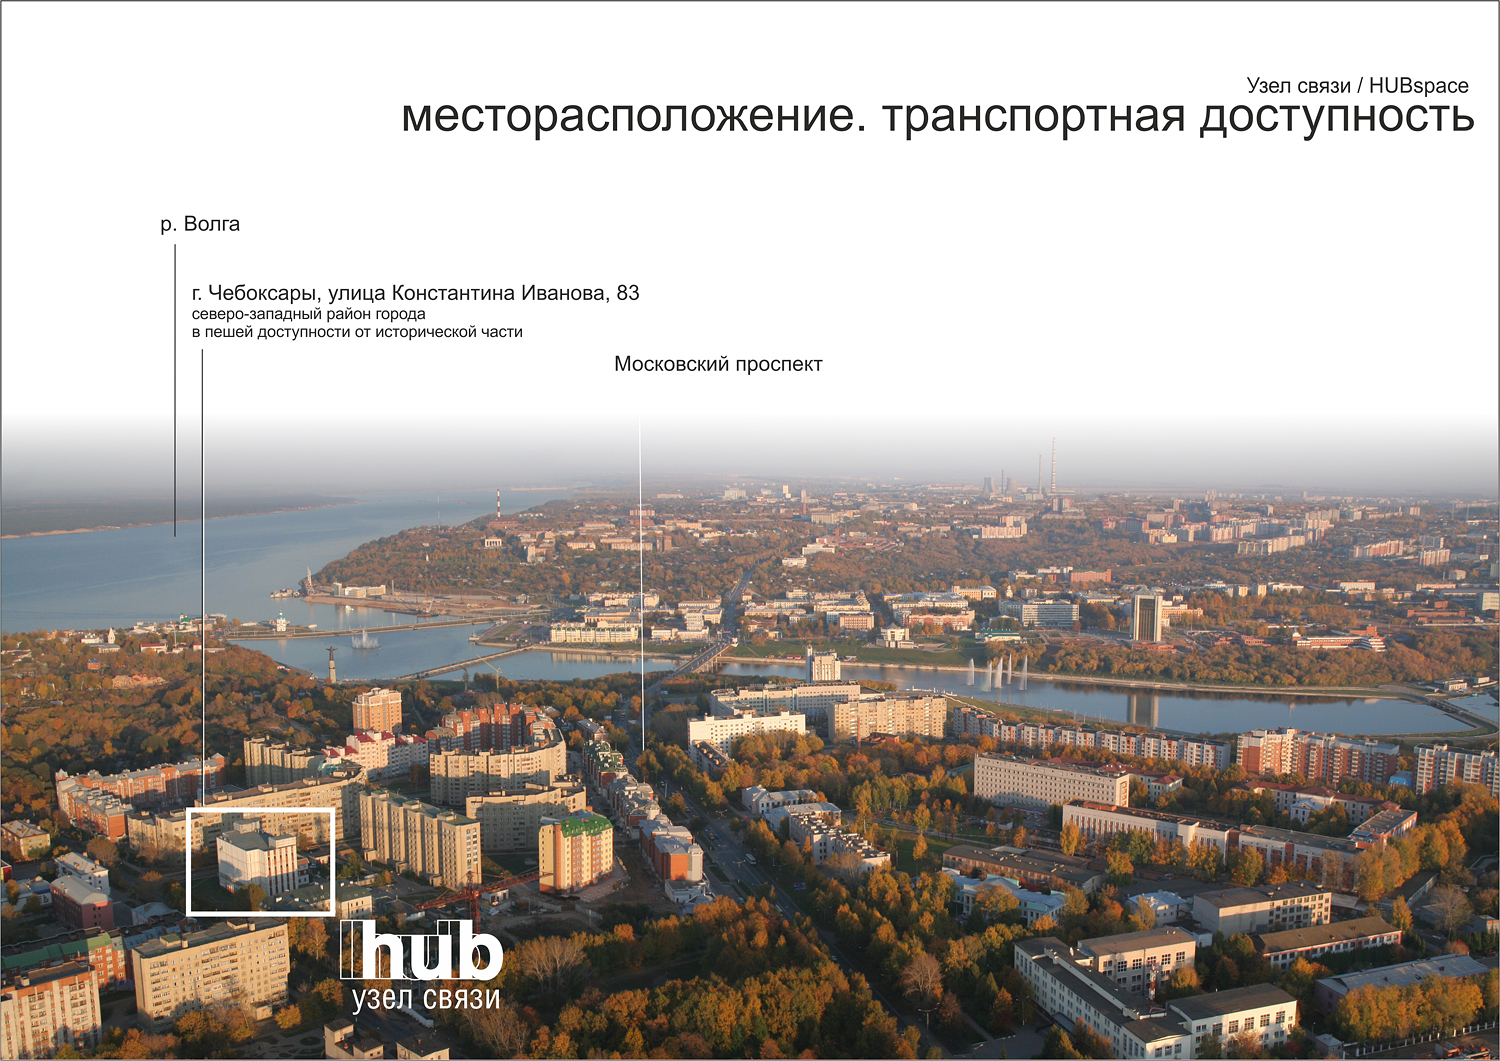 hubspace airphoto